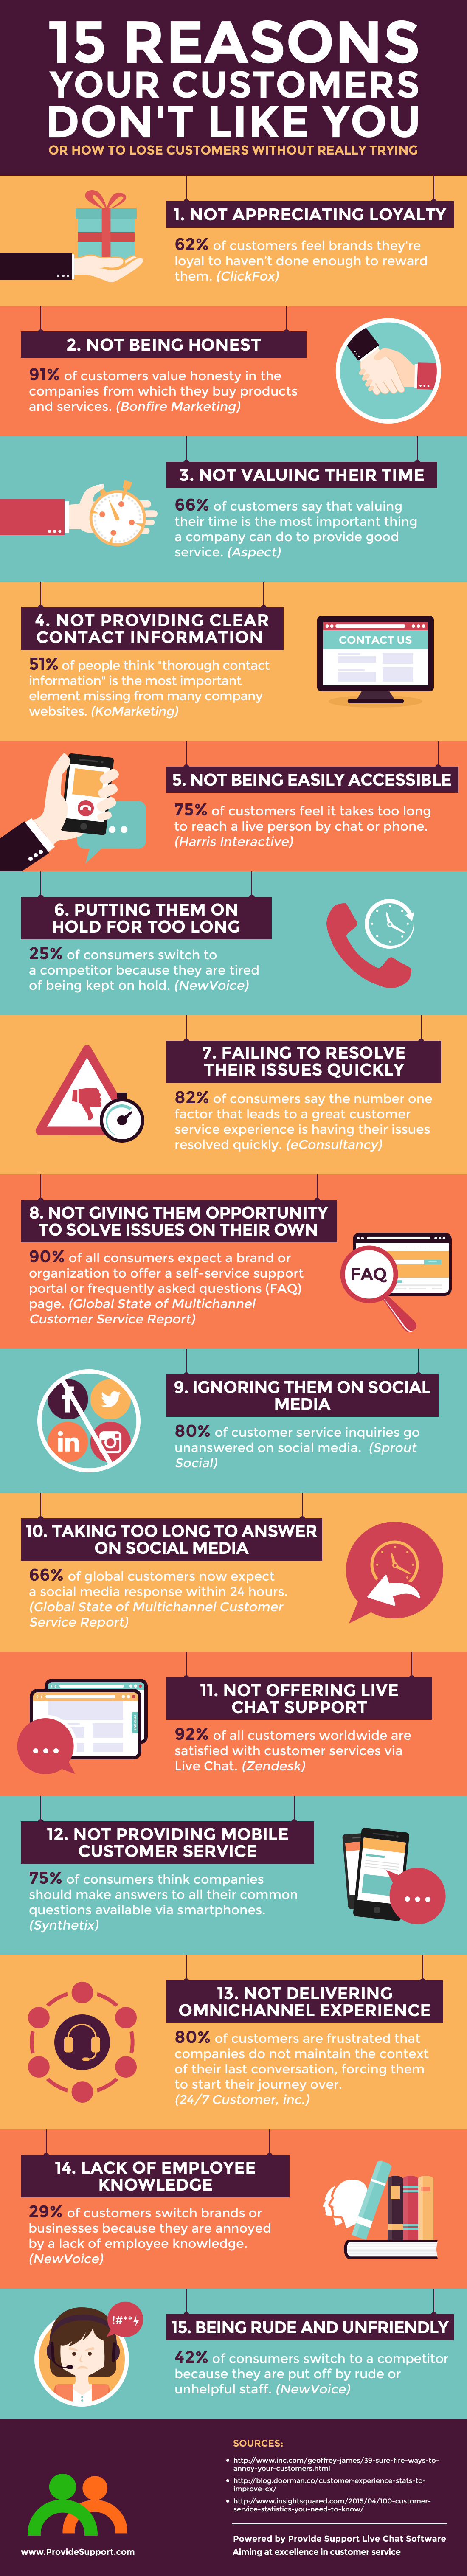 15 Reasons Your Customers Don't Like You [Inforgraphic from Provide Support]